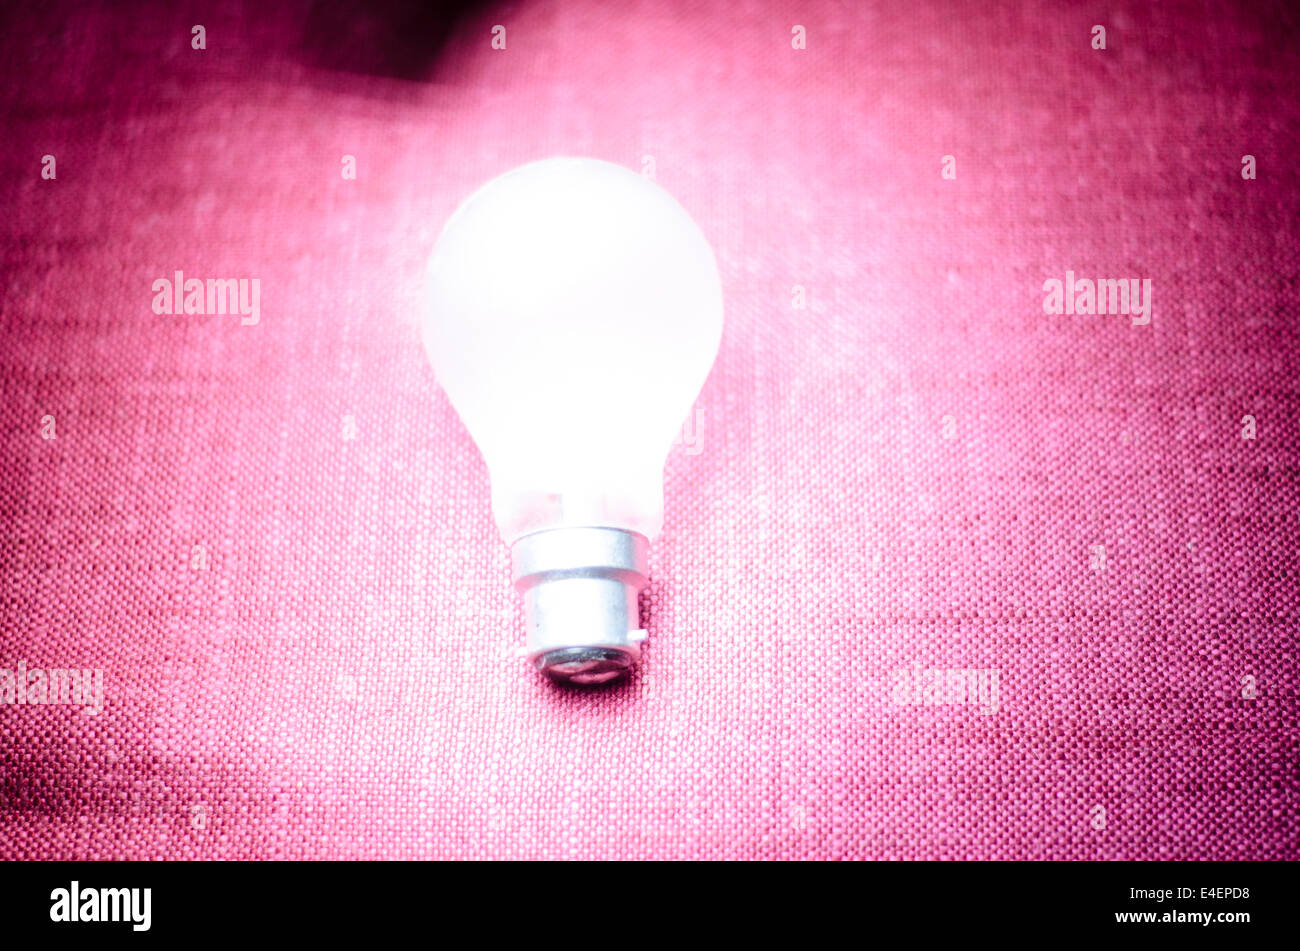 Glowing unplugged lightbulb against a pink textured background - Stock Image